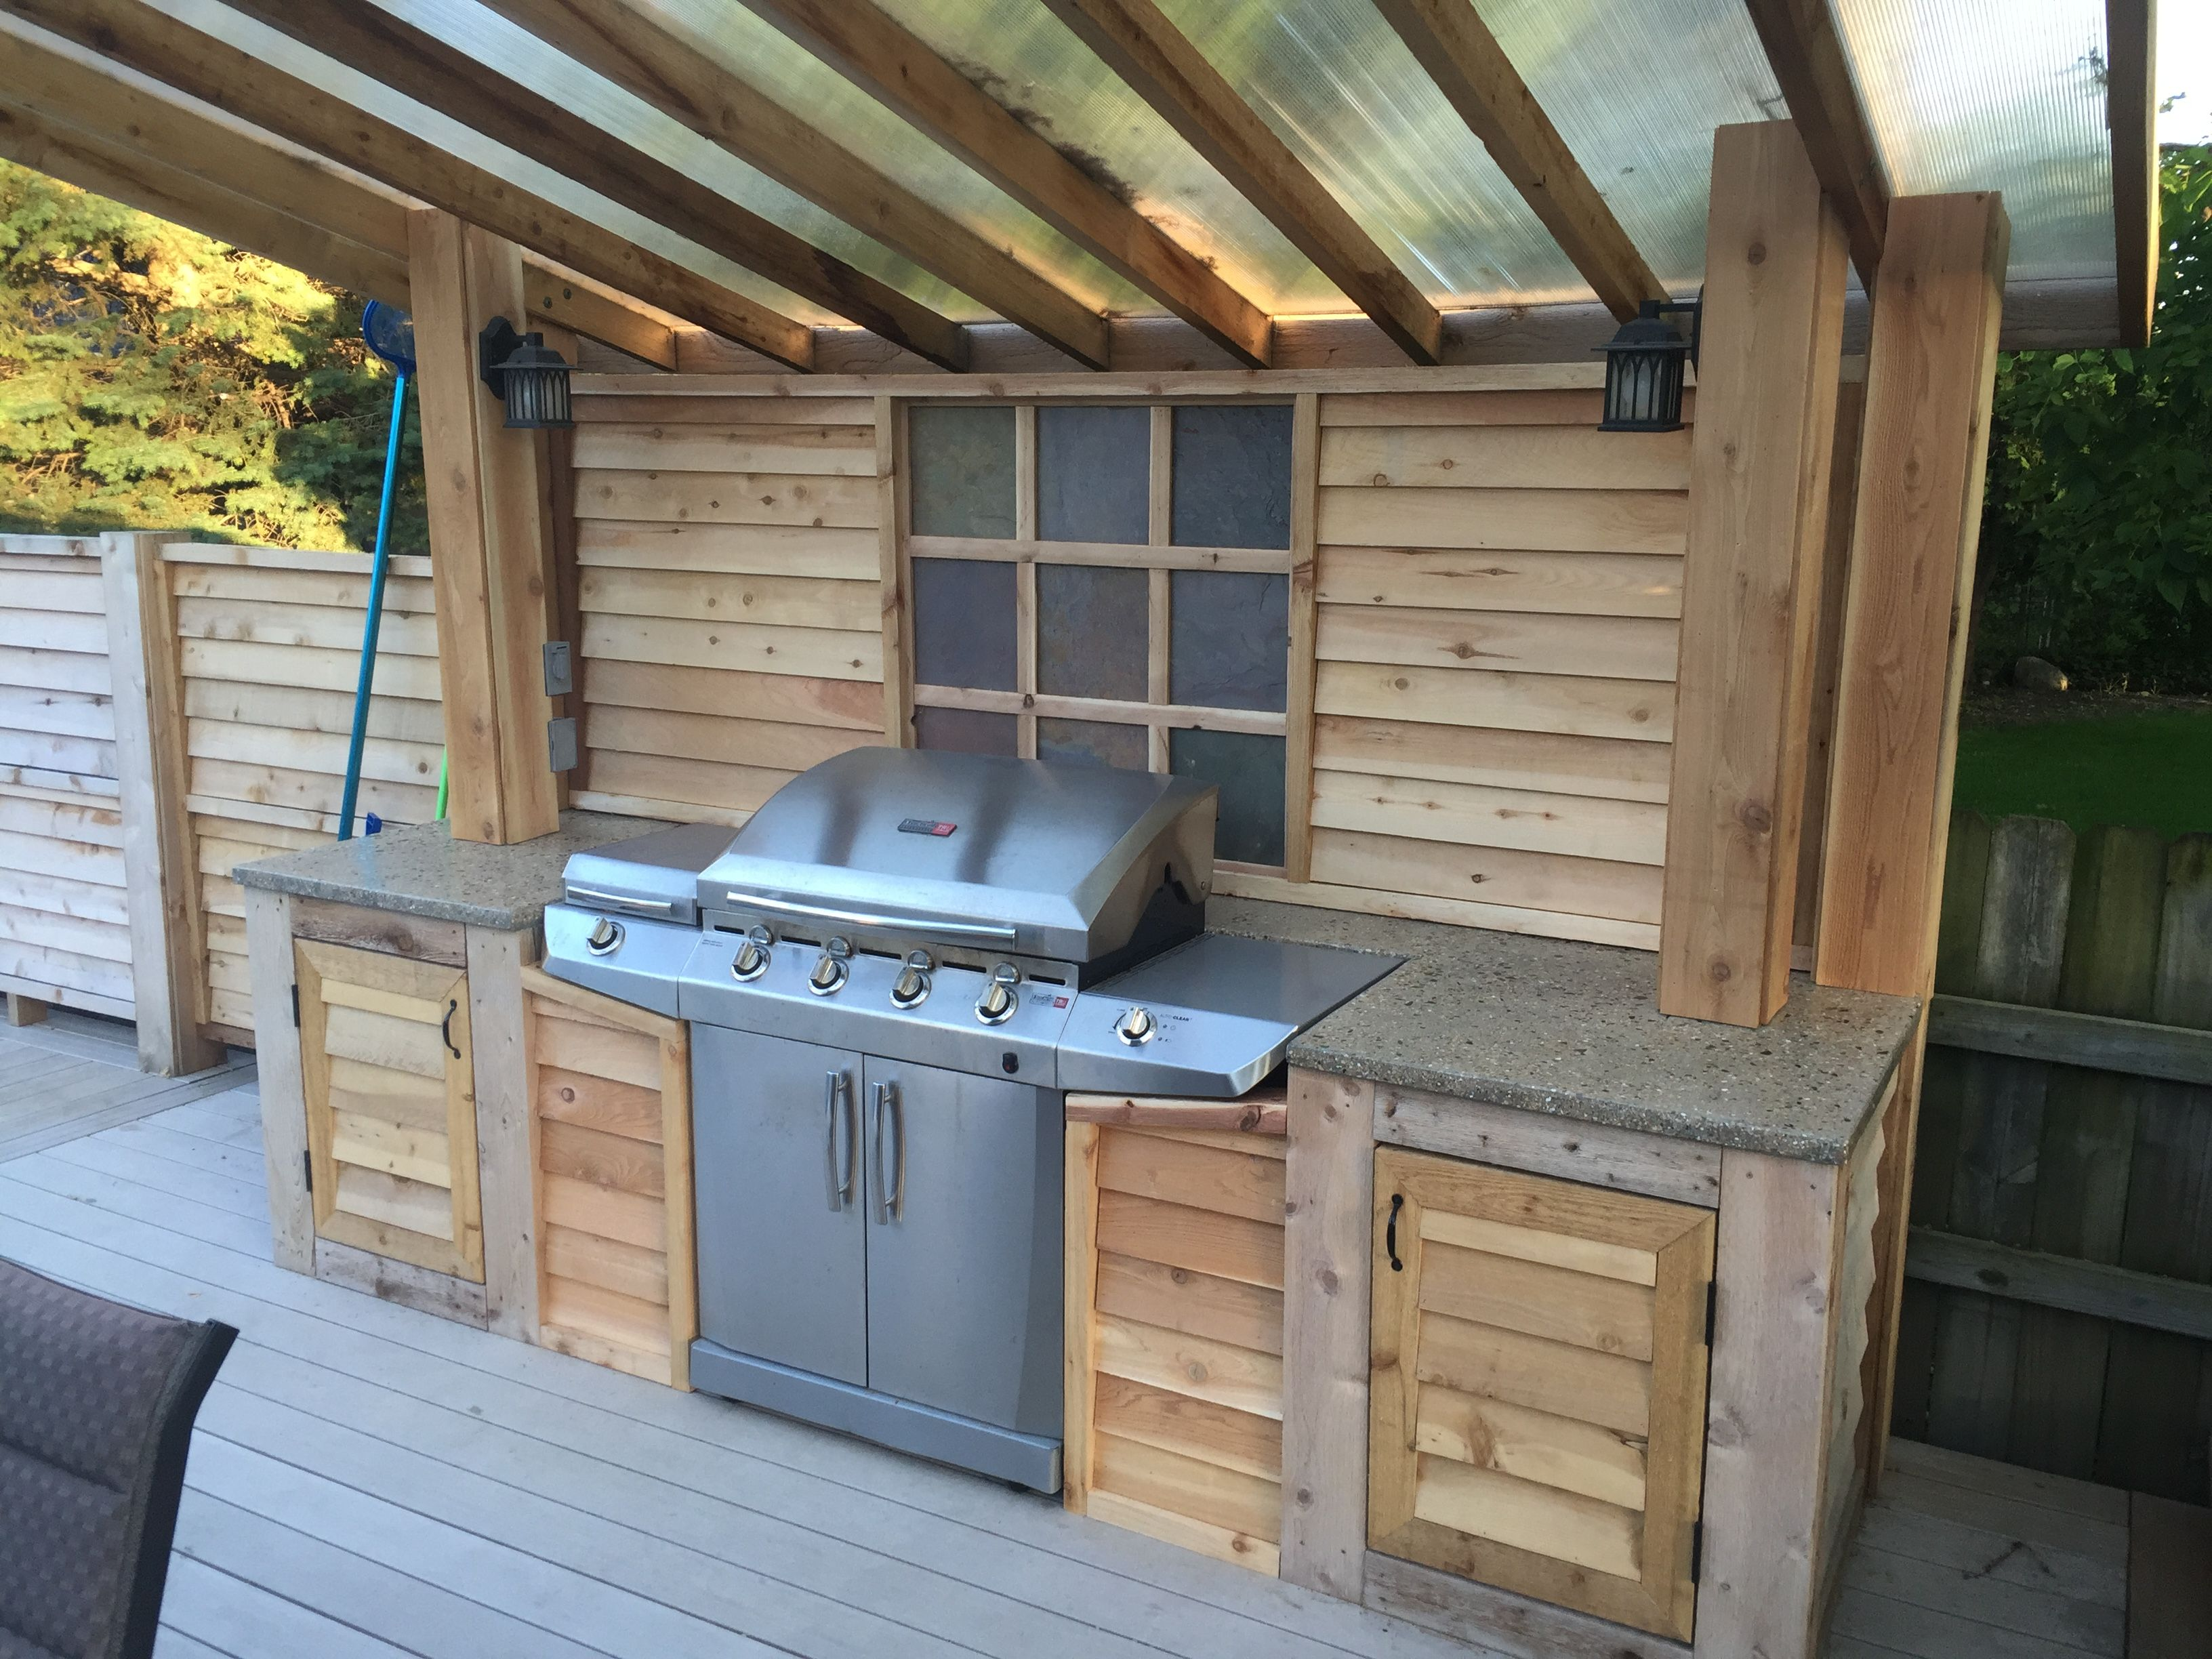 Build Grill Surround Of Wood